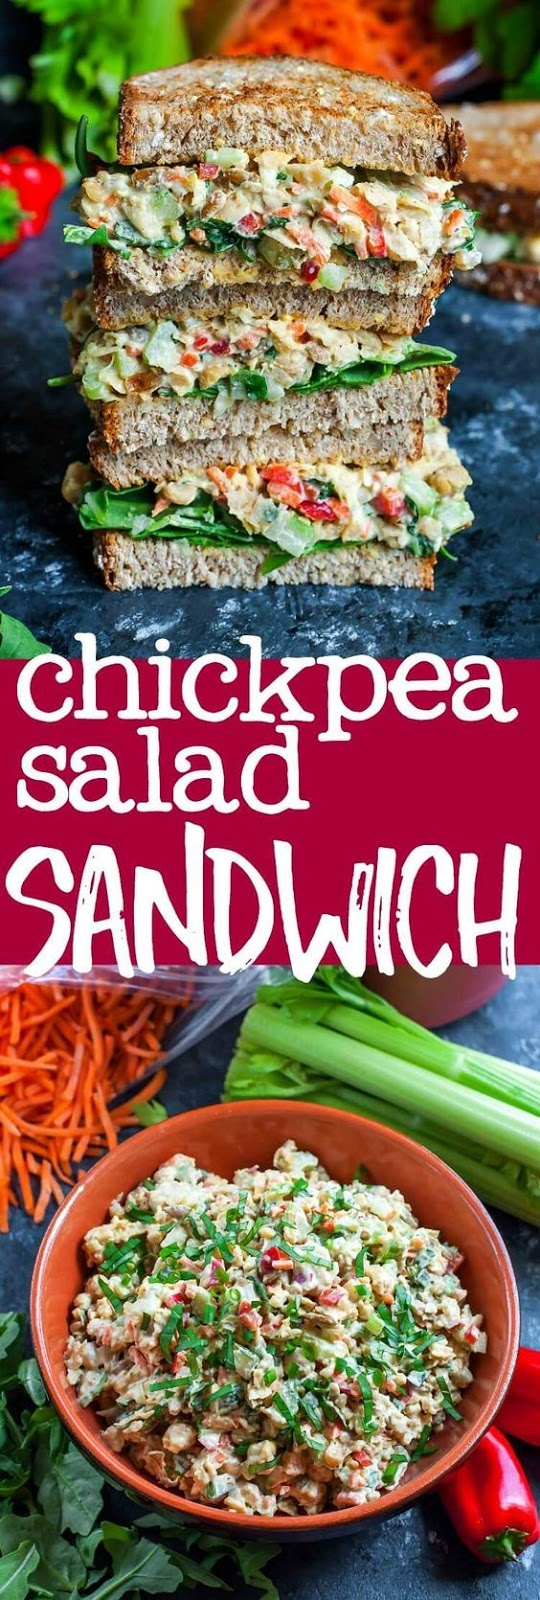 This tasty Garden Veggie Chickpea Salad Sandwich is a plant-based powerhouse of a lunch! Make it in advance for a party or picnic or to take along as an easy weekday lunch for work or school.